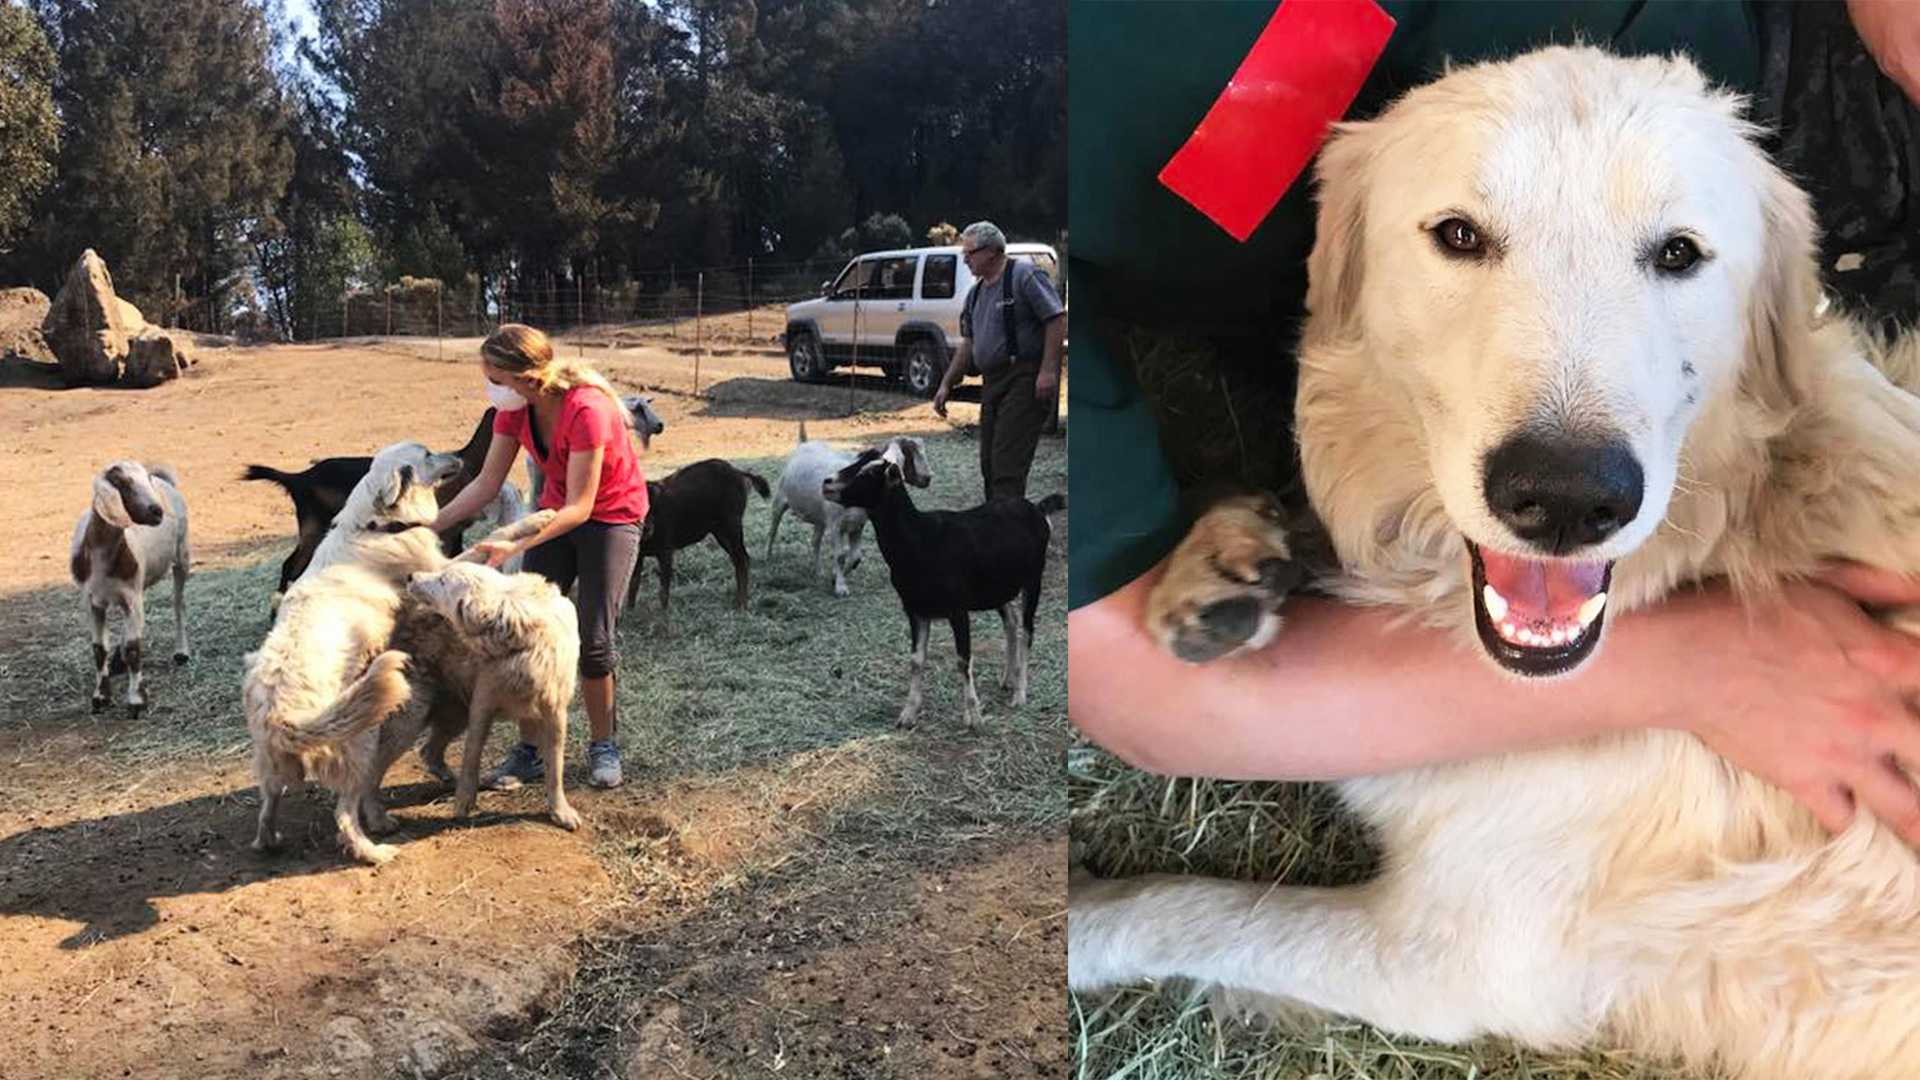 Dog Hailed as Hero After Refusing to Leave Goats Alone in Wildfires